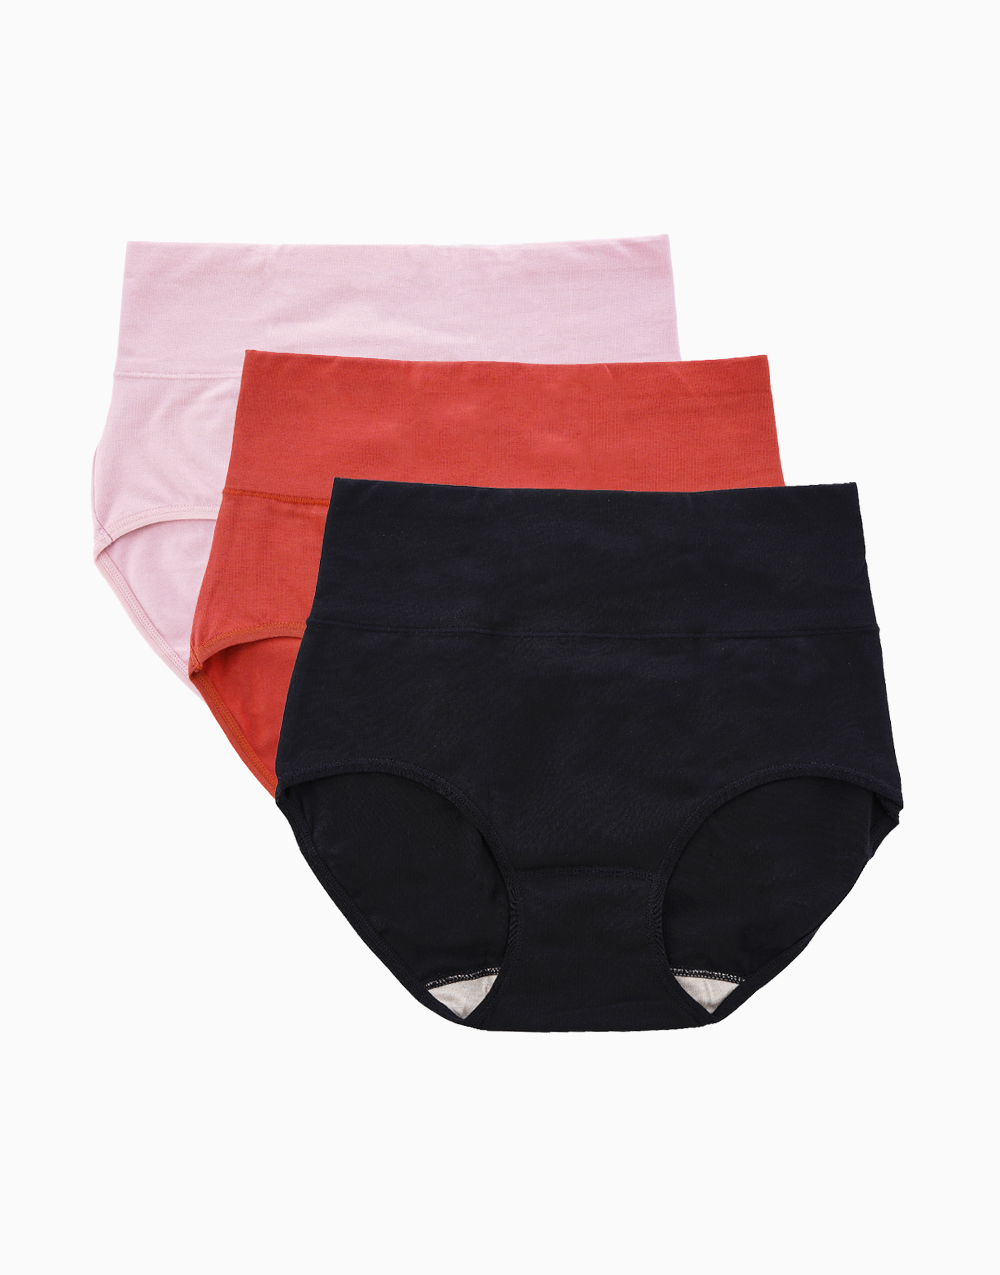 Belly Bikinis Mixed Color Set (Set of 3 High Rise Control Panties) by Jellyfit | Large